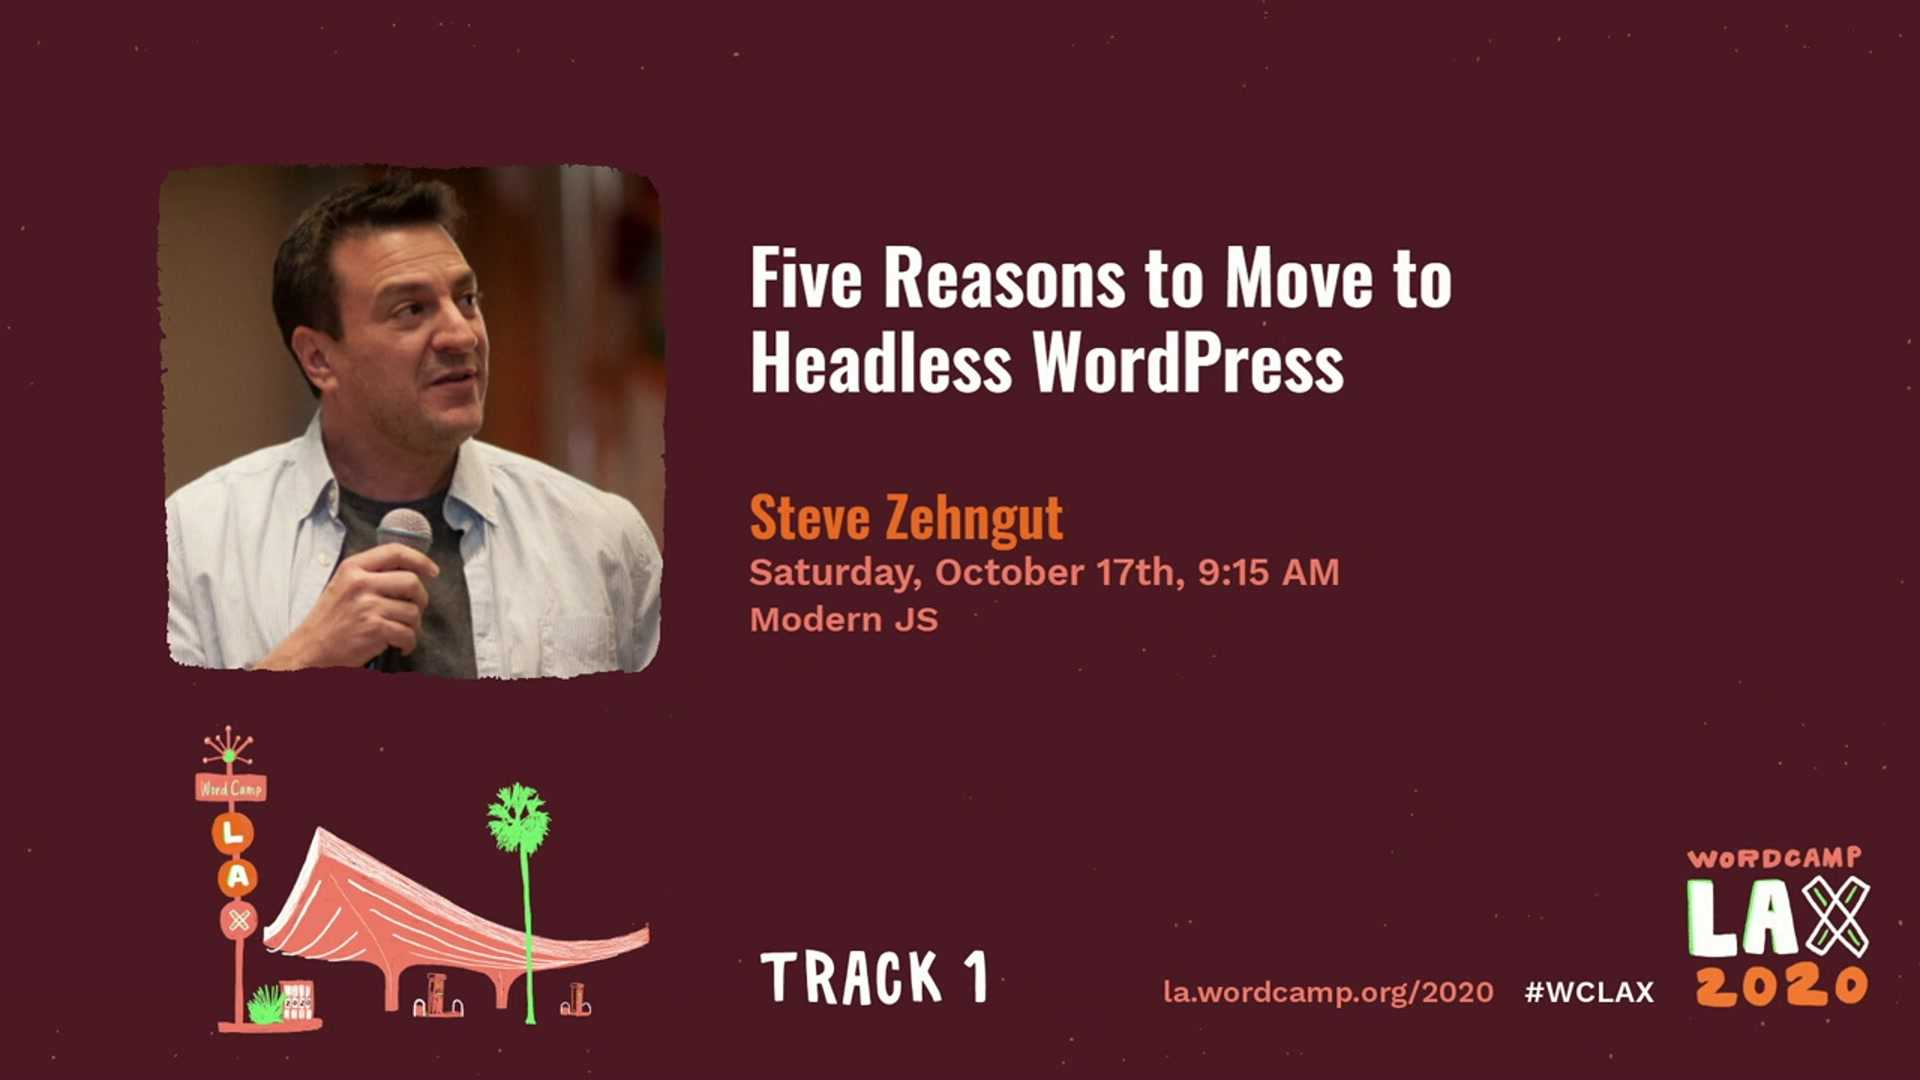 Steve Zehngut: Five Reasons to Move to Headless WordPress